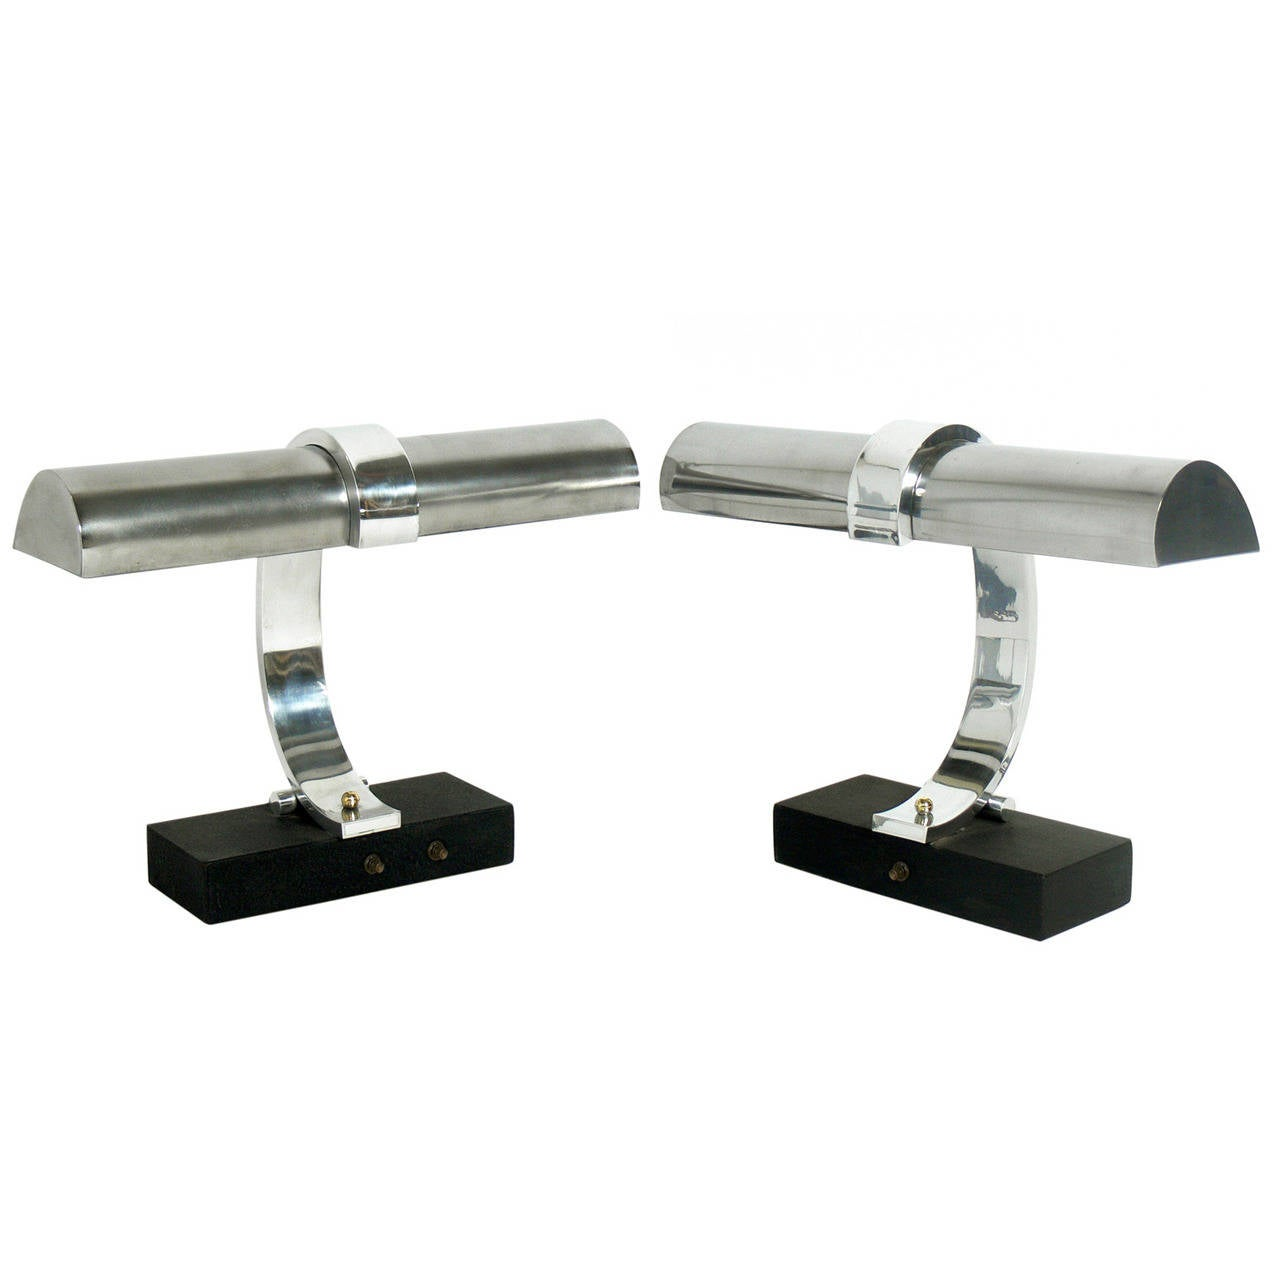 Pair of Art Deco Chrome Lamps in the manner of Donald Deskey